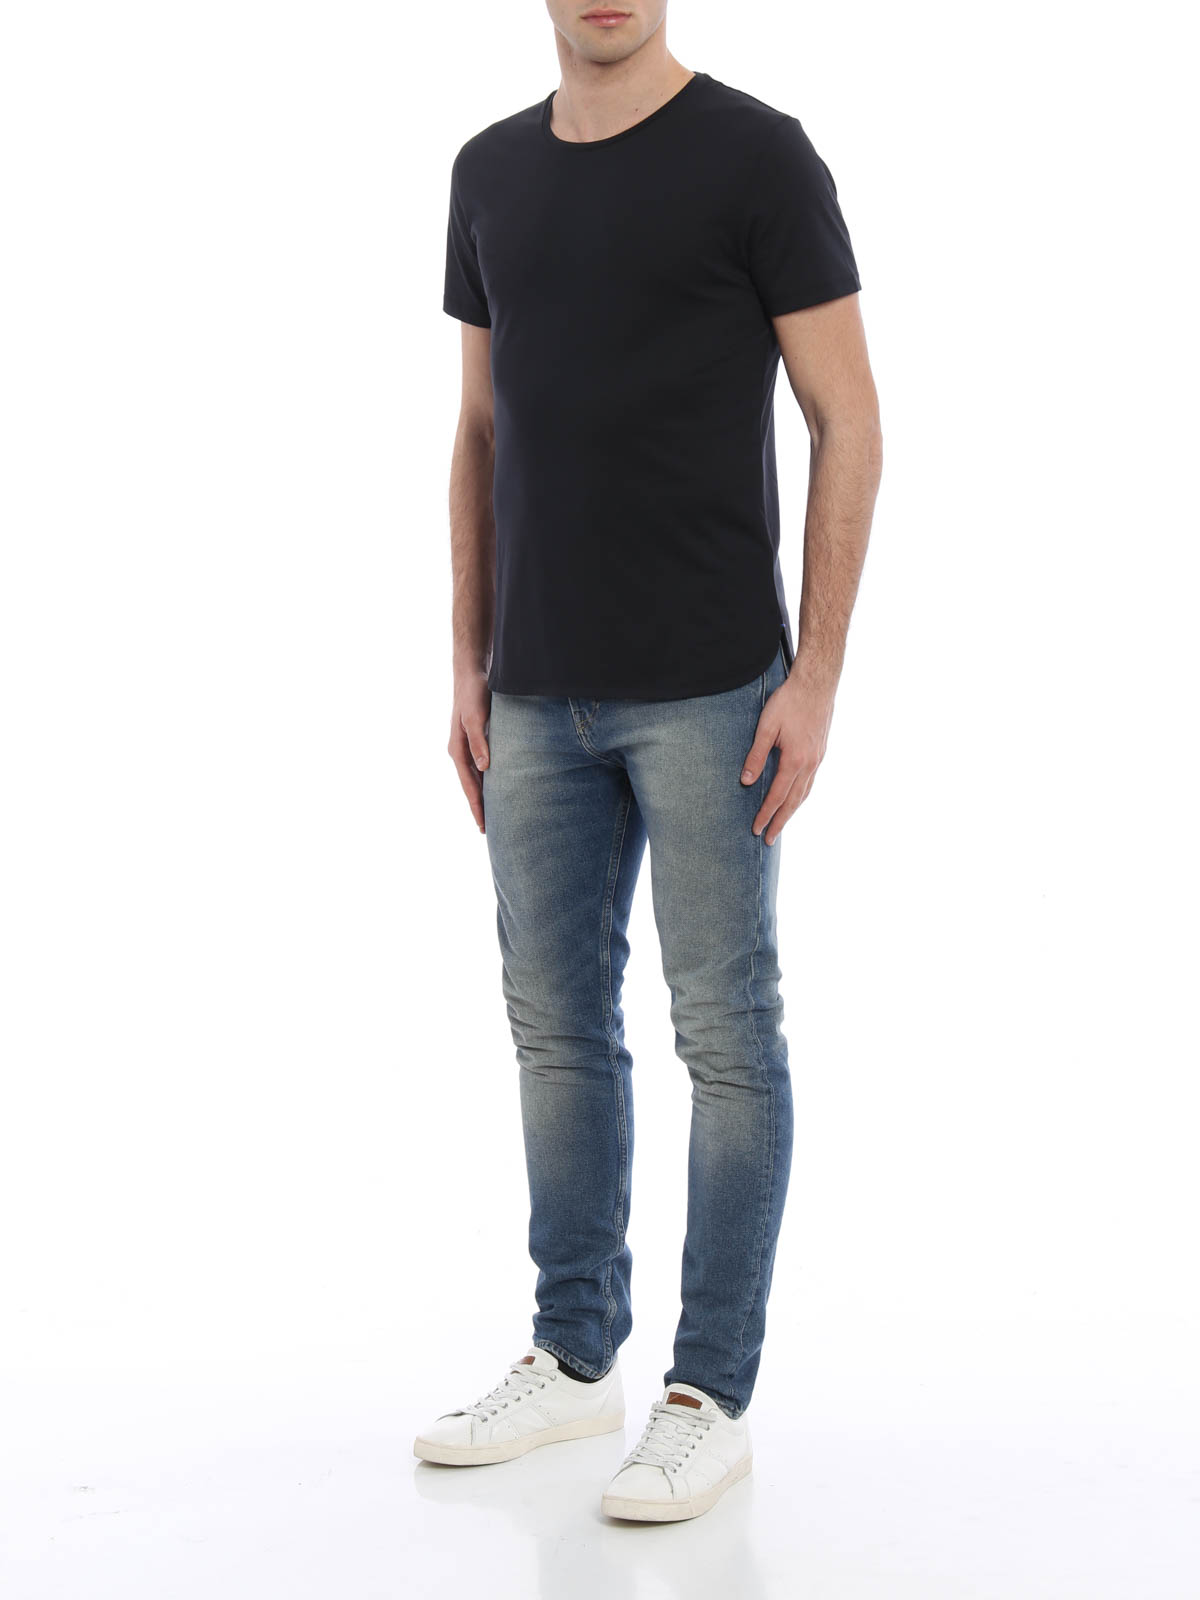 stantford cotton jersey t shirt by burberry t shirts ikrix